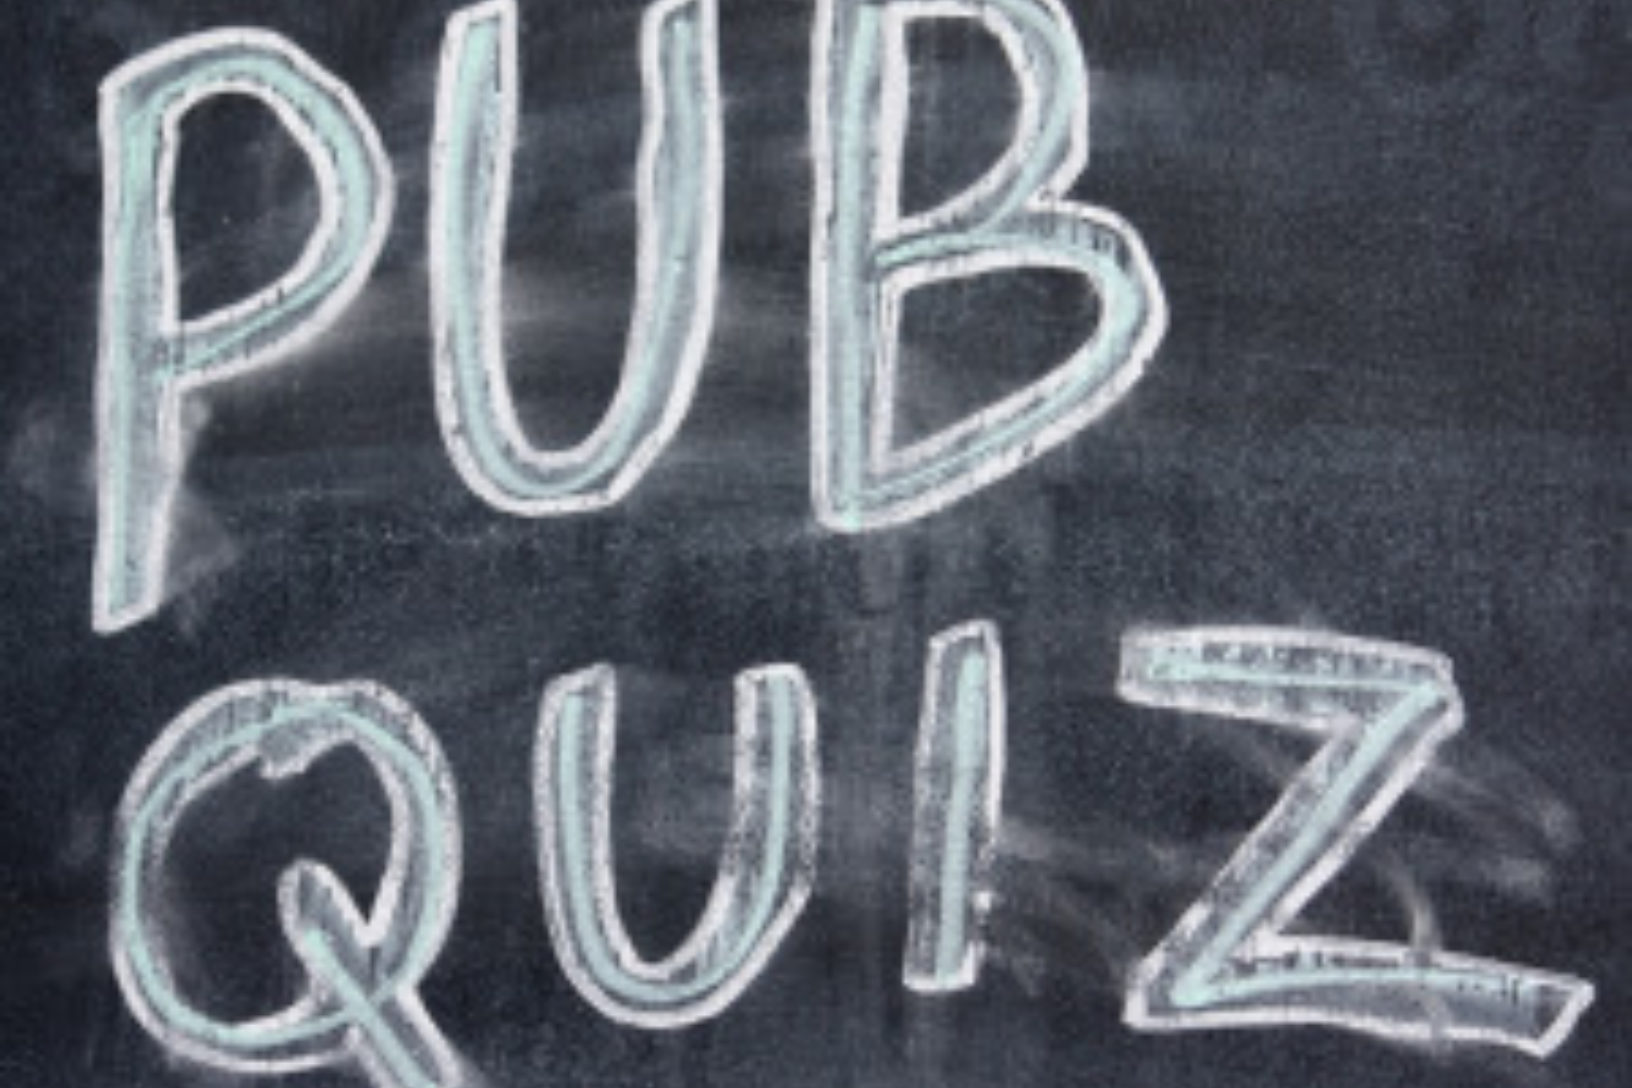 Pub quiz written on chalkboard